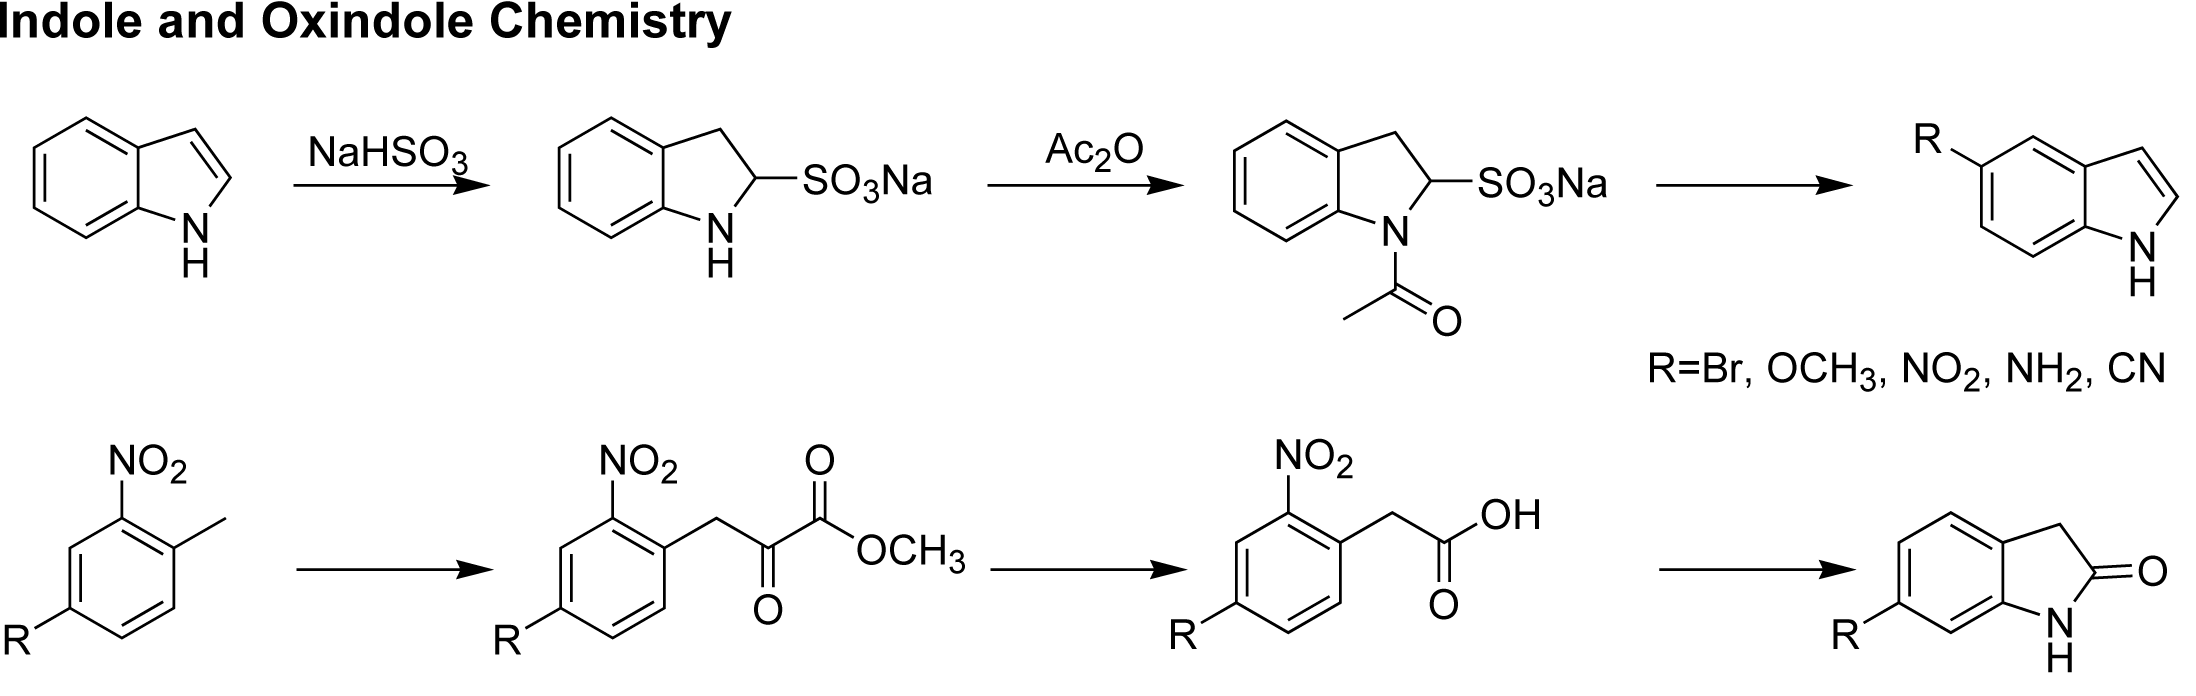 Indole_and_Oxindole_Chemistry_Version_5